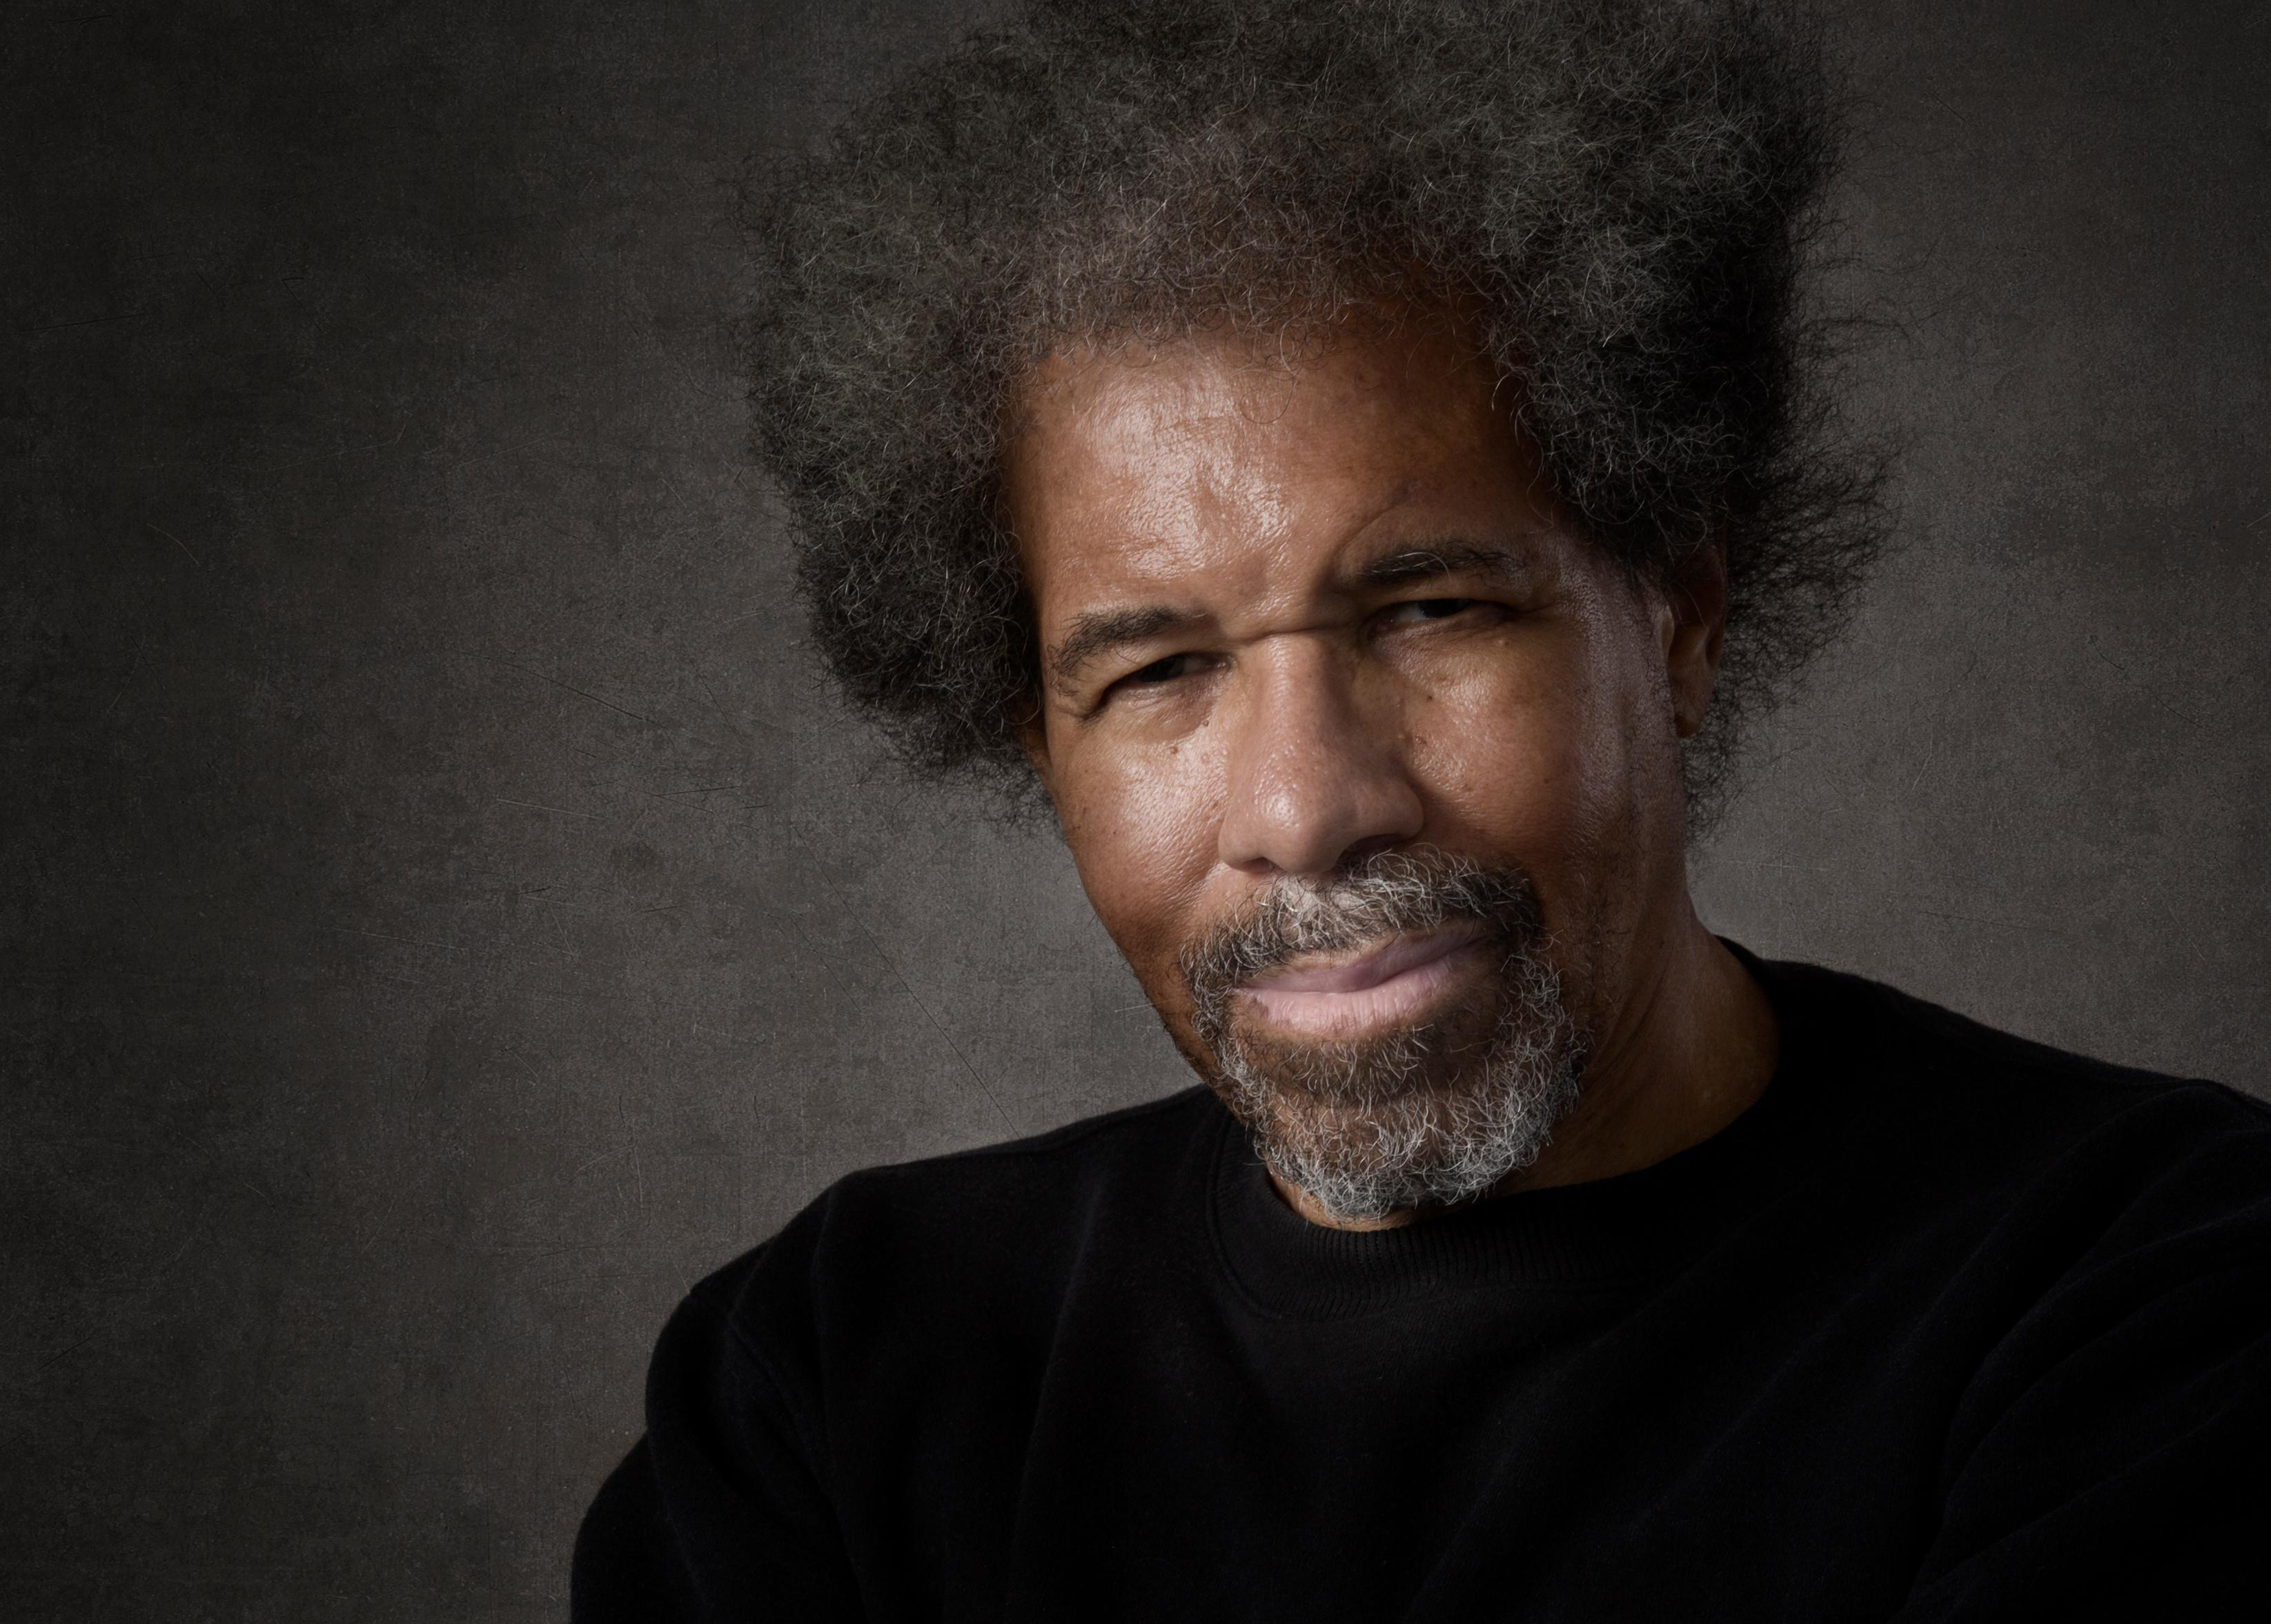 After 40 years in solitary confinement, activist Albert Woodfox tells his story of survival